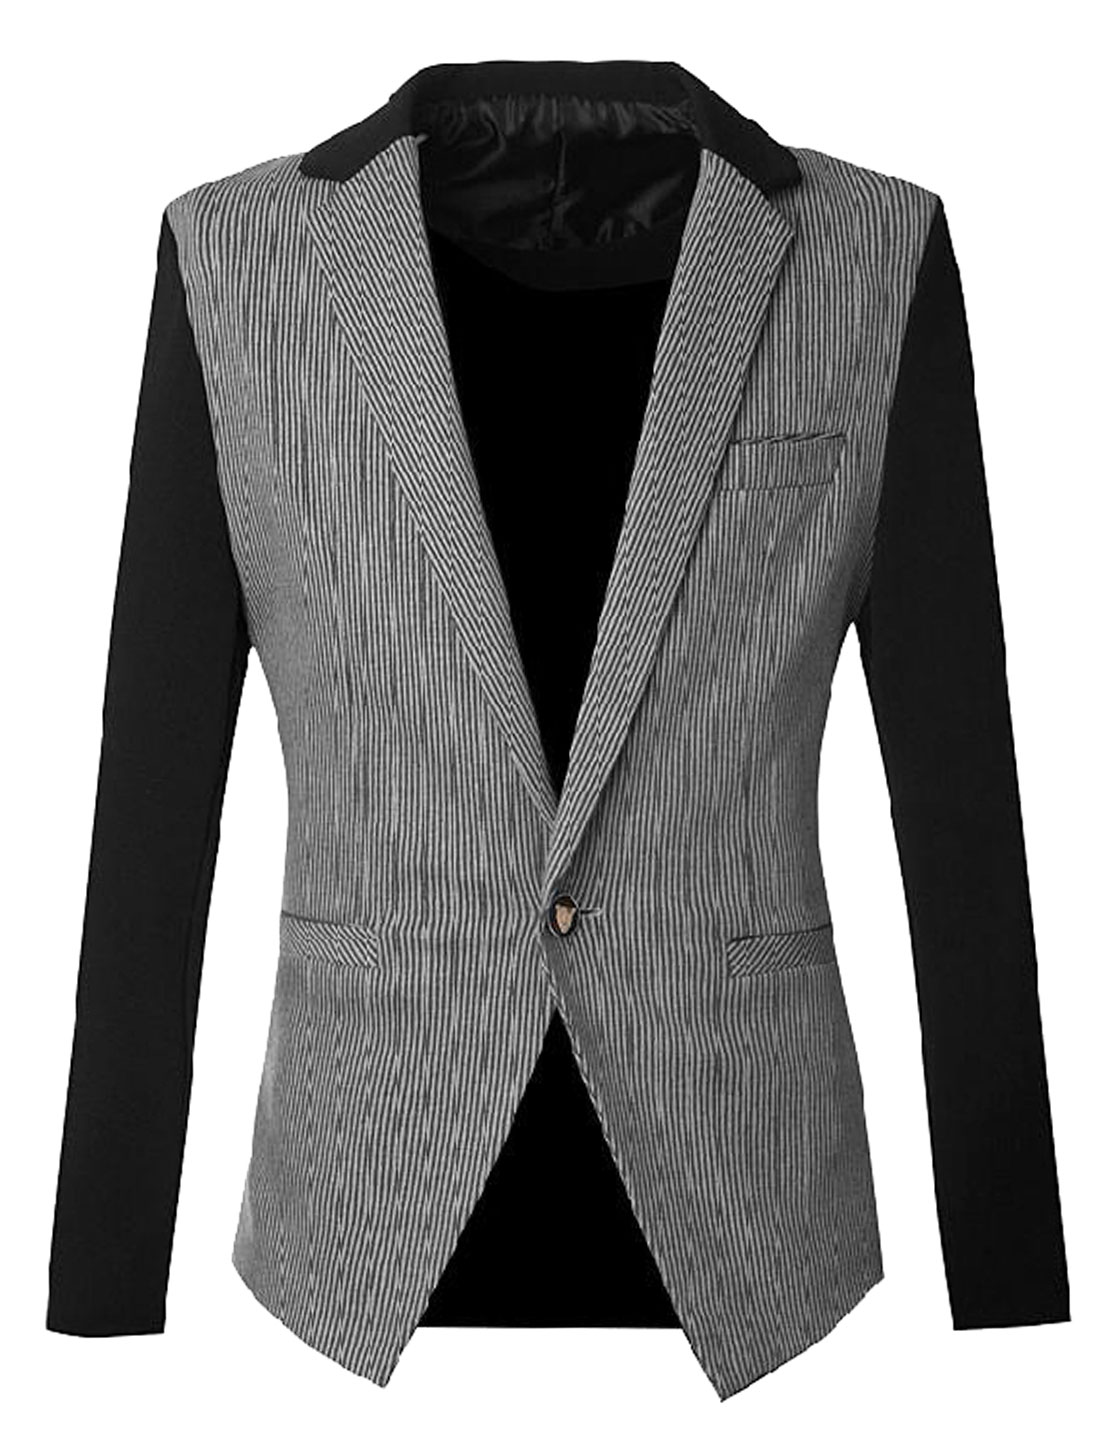 Men Notched Lapel Stripes Pattern One Button Closure Casual Blazer Black Gray S